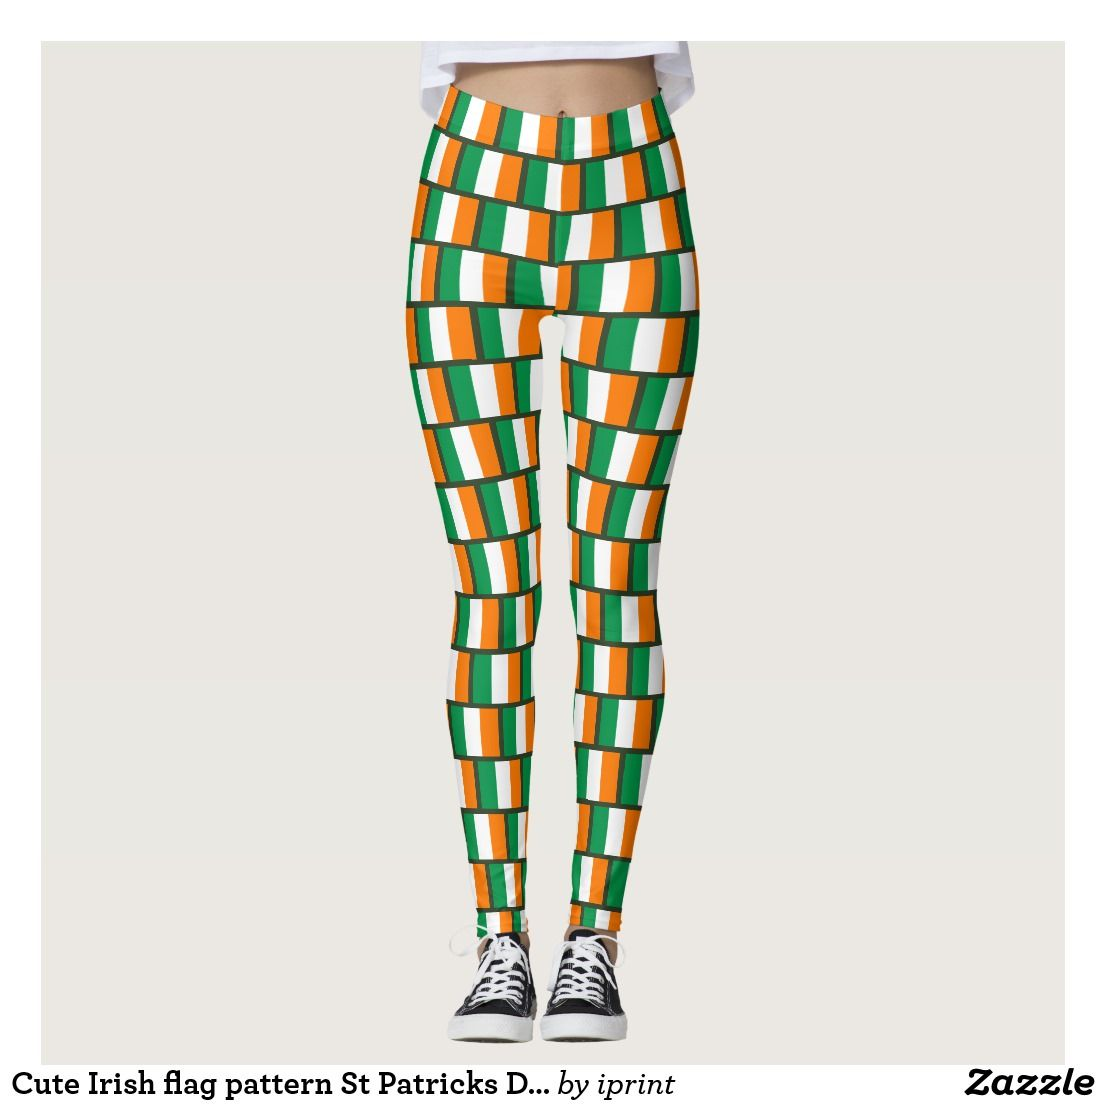 b3a290147ad69 Cute Irish flag pattern St Patricks Day party leggings. Fun St Pattys Day  costume outfit for lucky Irish women and girls.